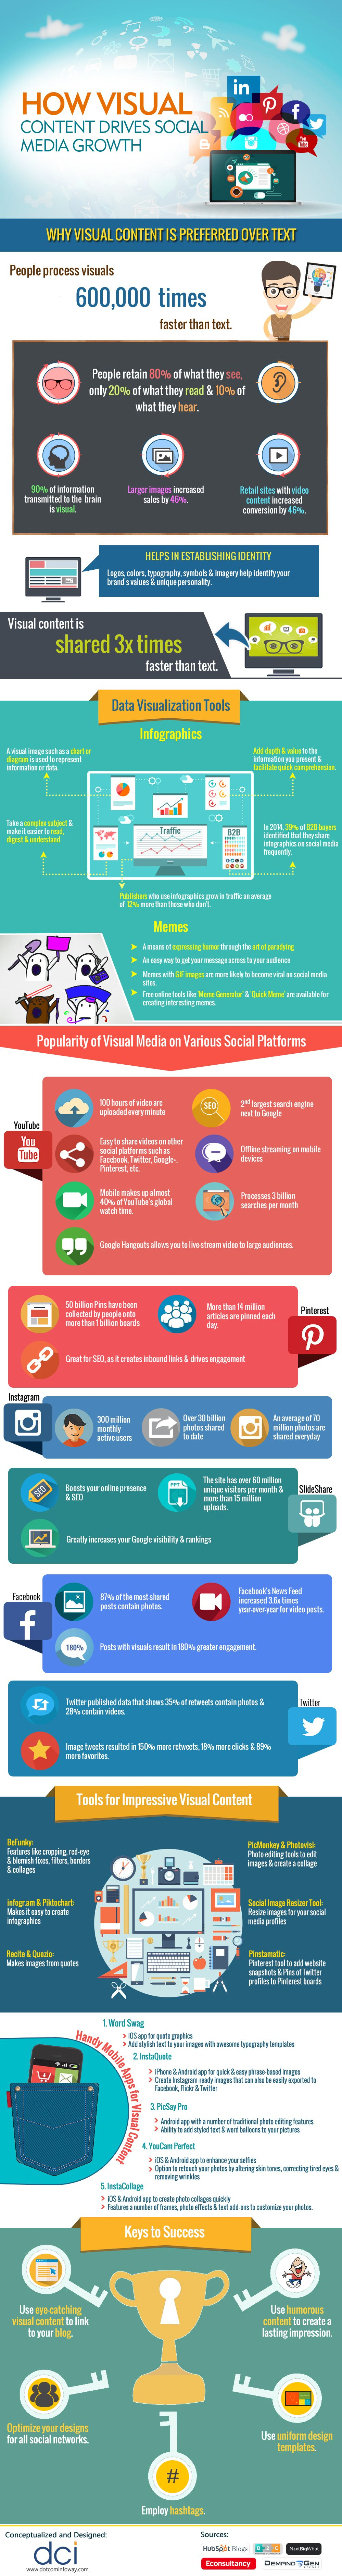 How Visual Content Drives Social Media Growth #infographic